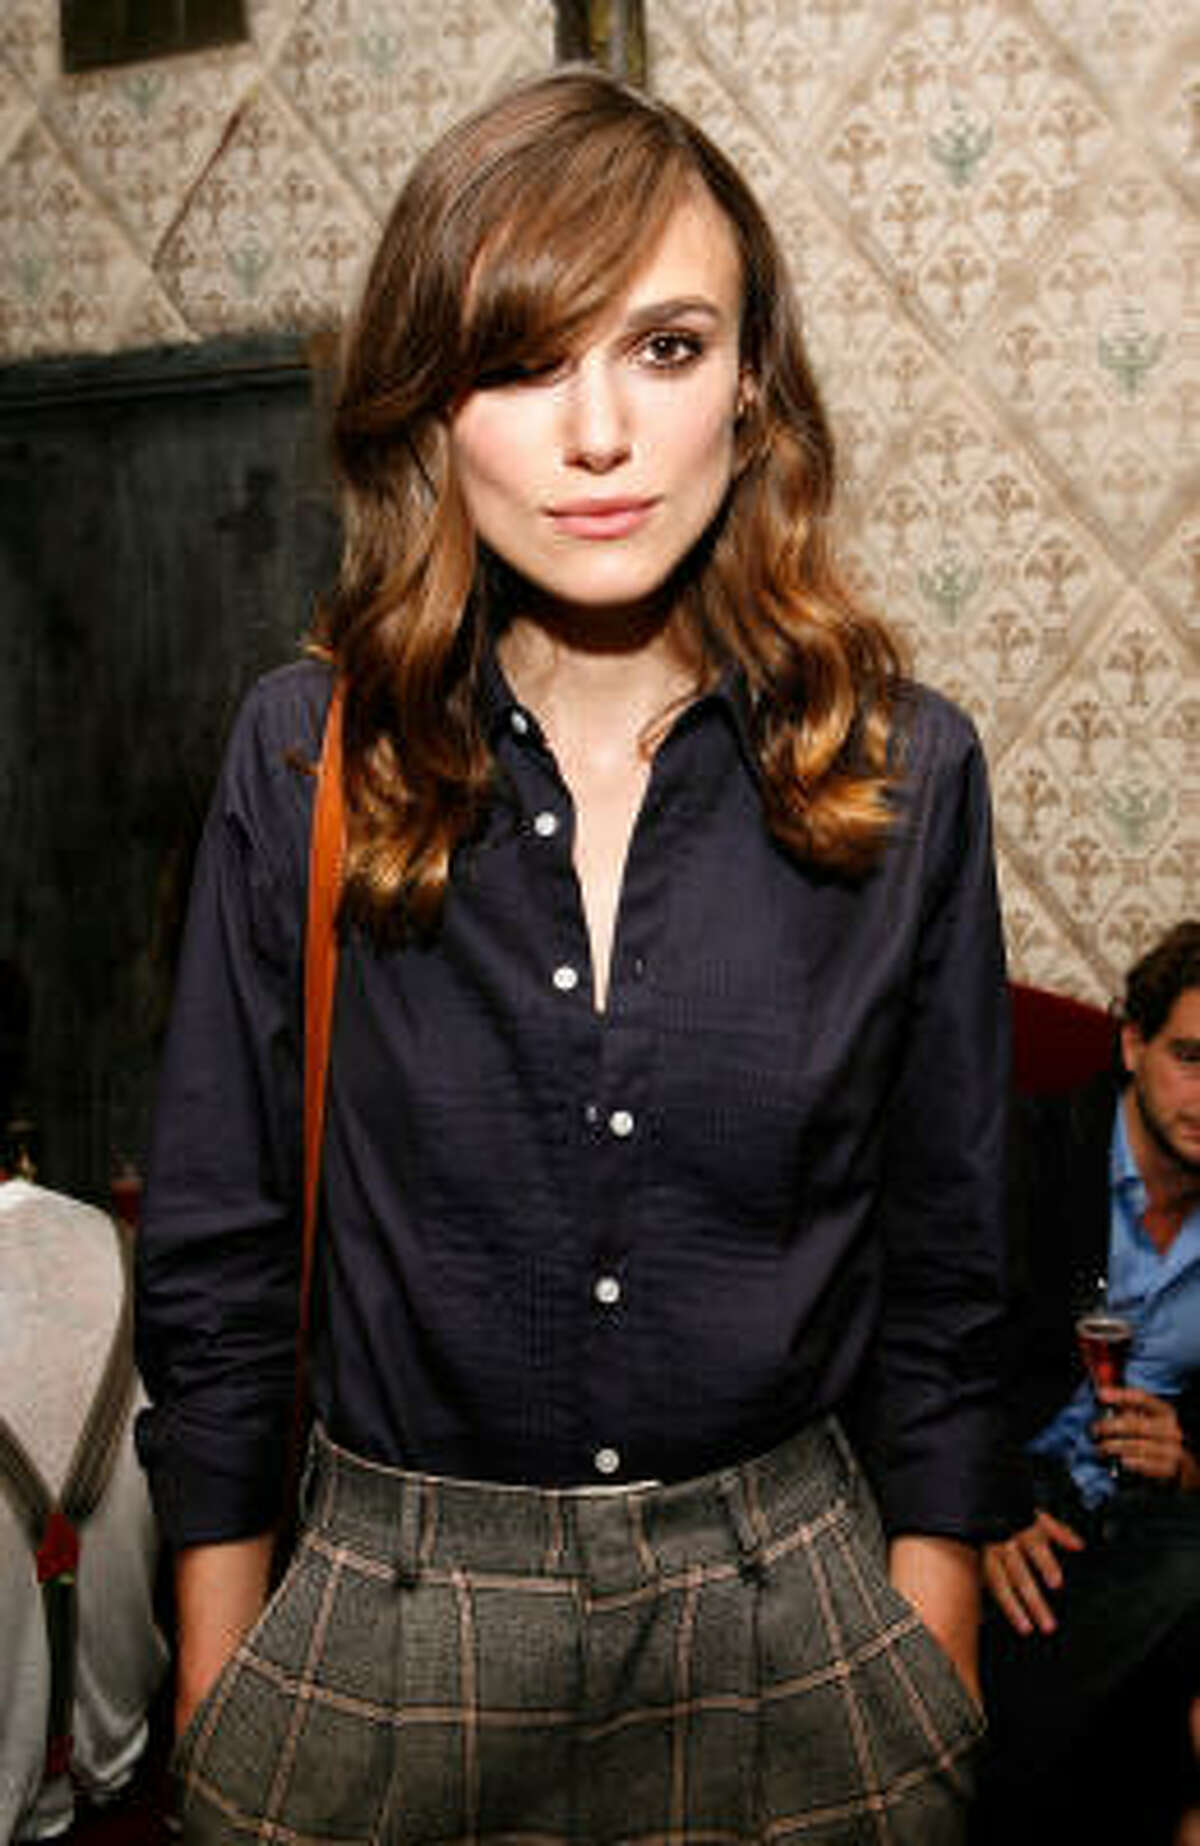 In this photo from a few months ago, Keira Knightley looks gaunt. Find healthy weight-loss tips and support at Losing It. Click here to join.